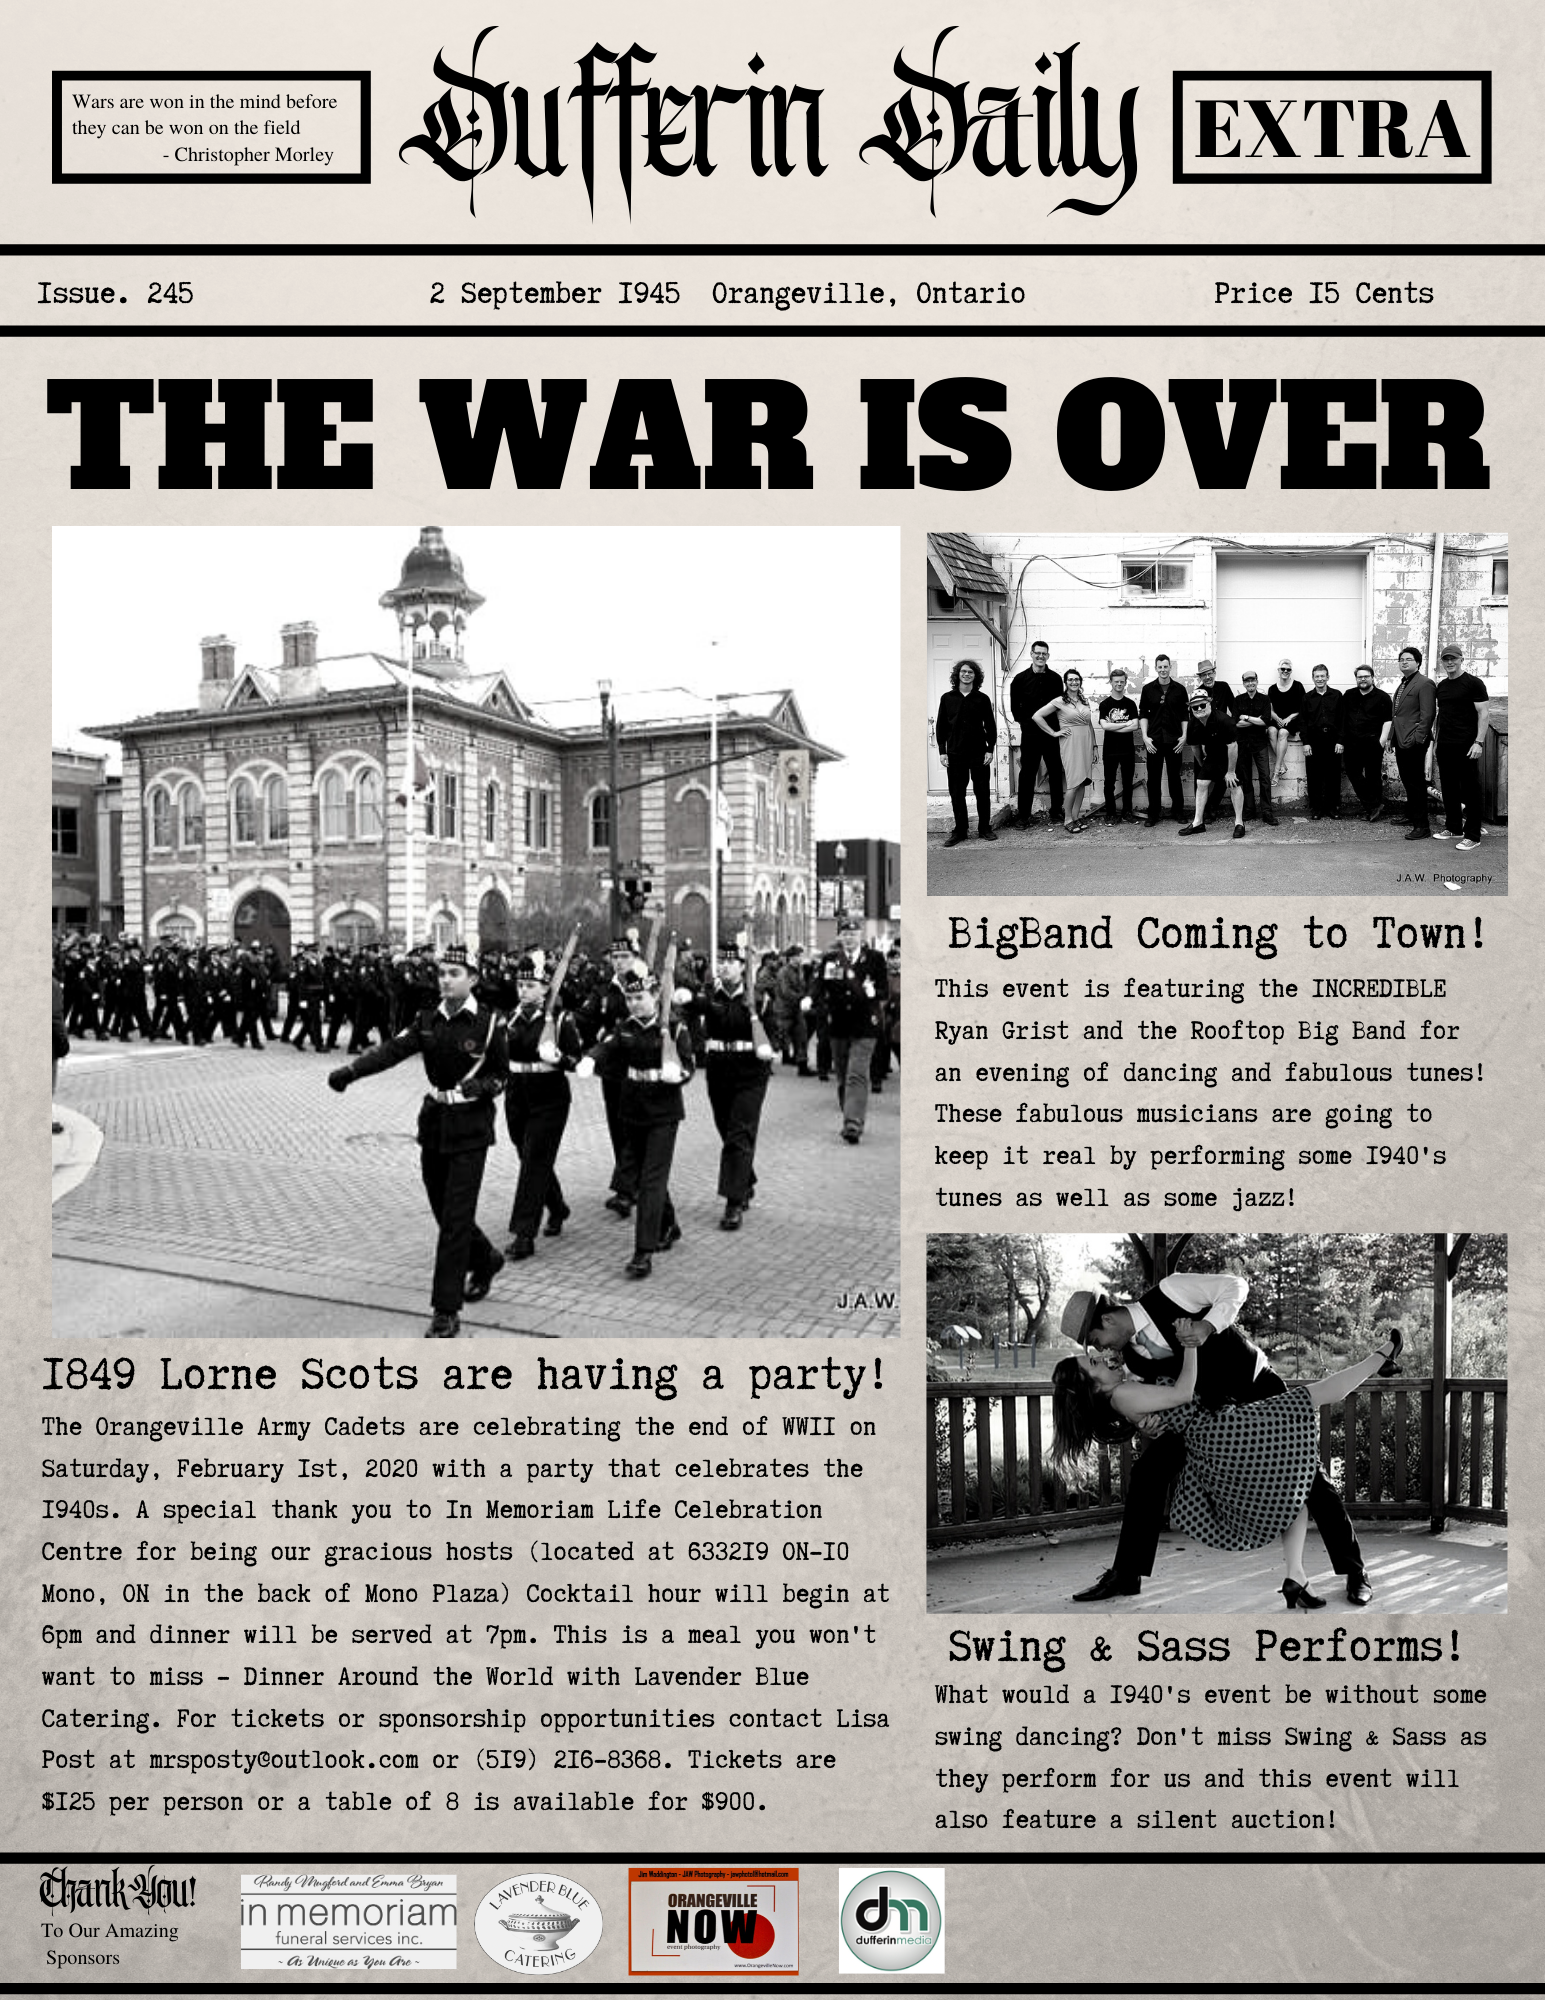 The War is Over Fundraising Gala Orangeville